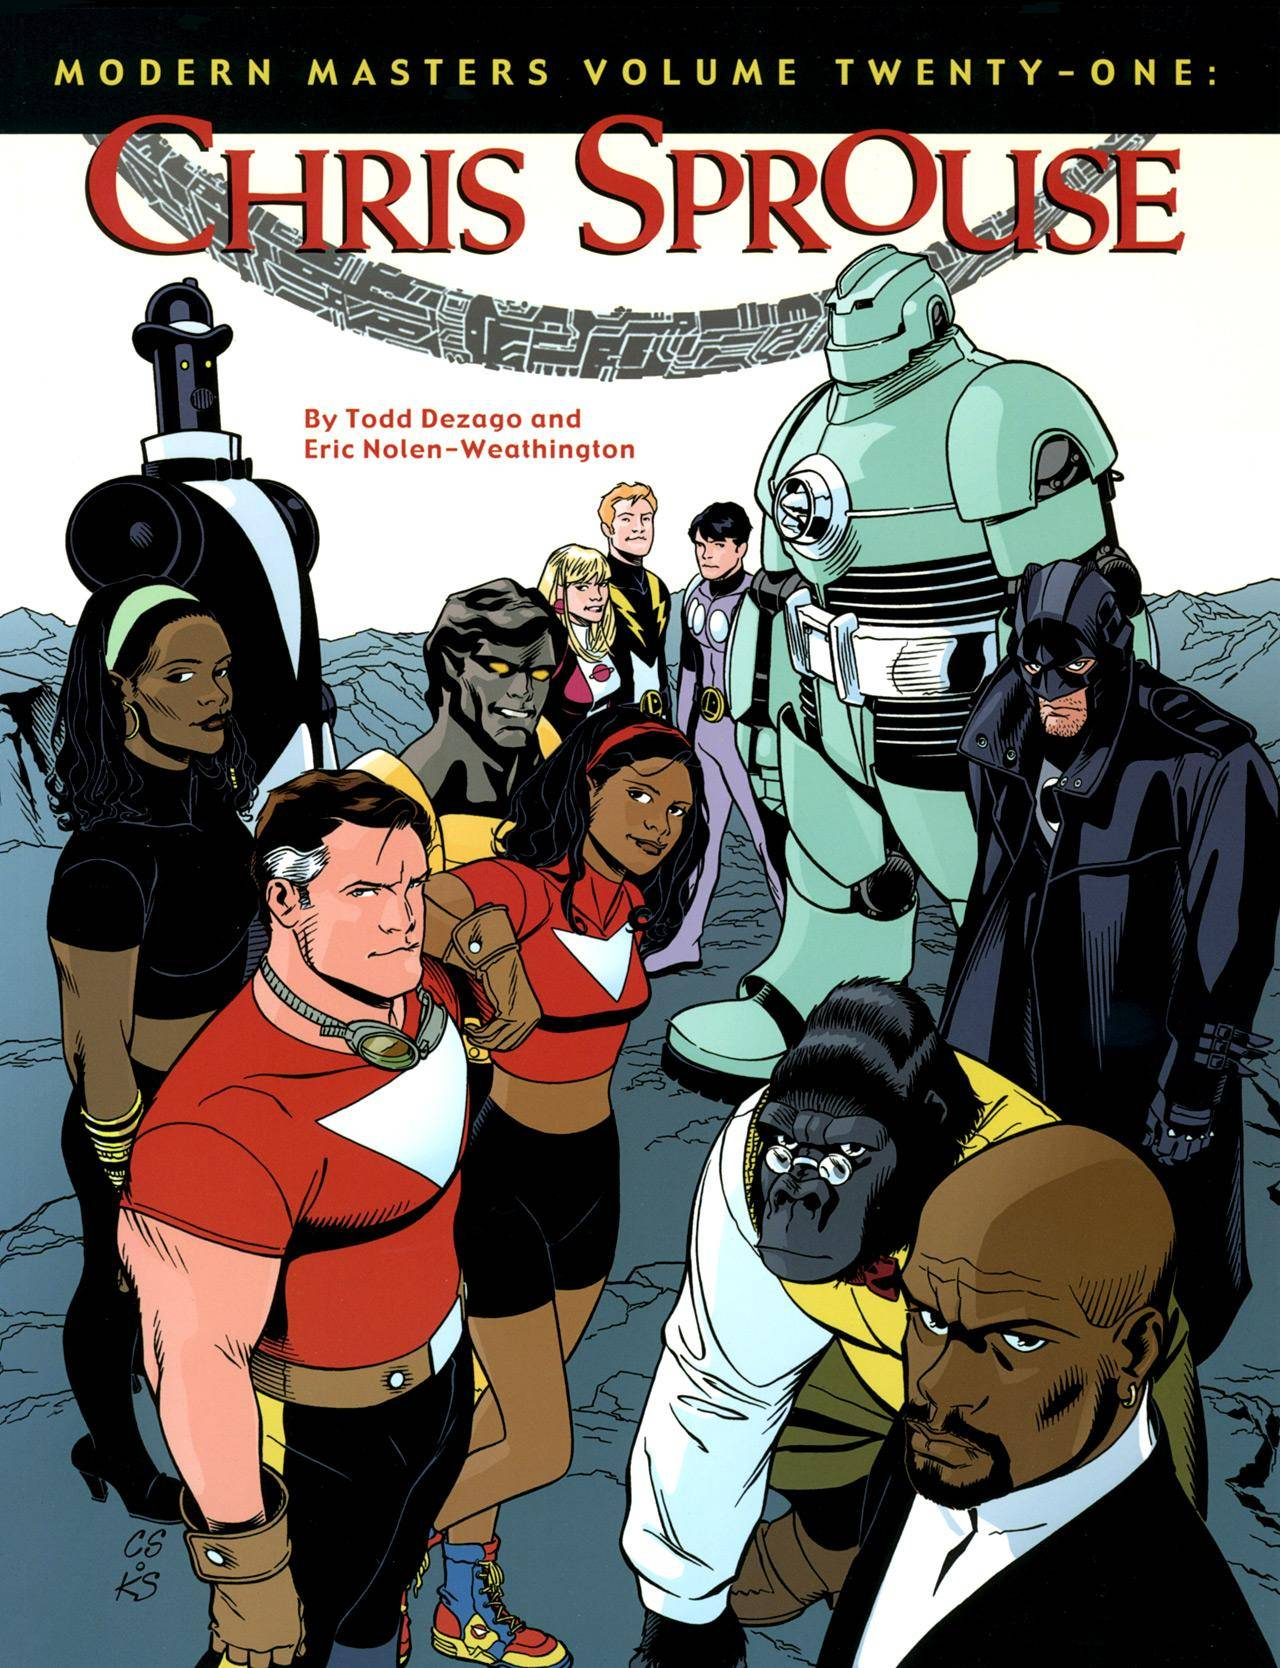 Modern Masters Vol 21 - Chris Sprouse 2009